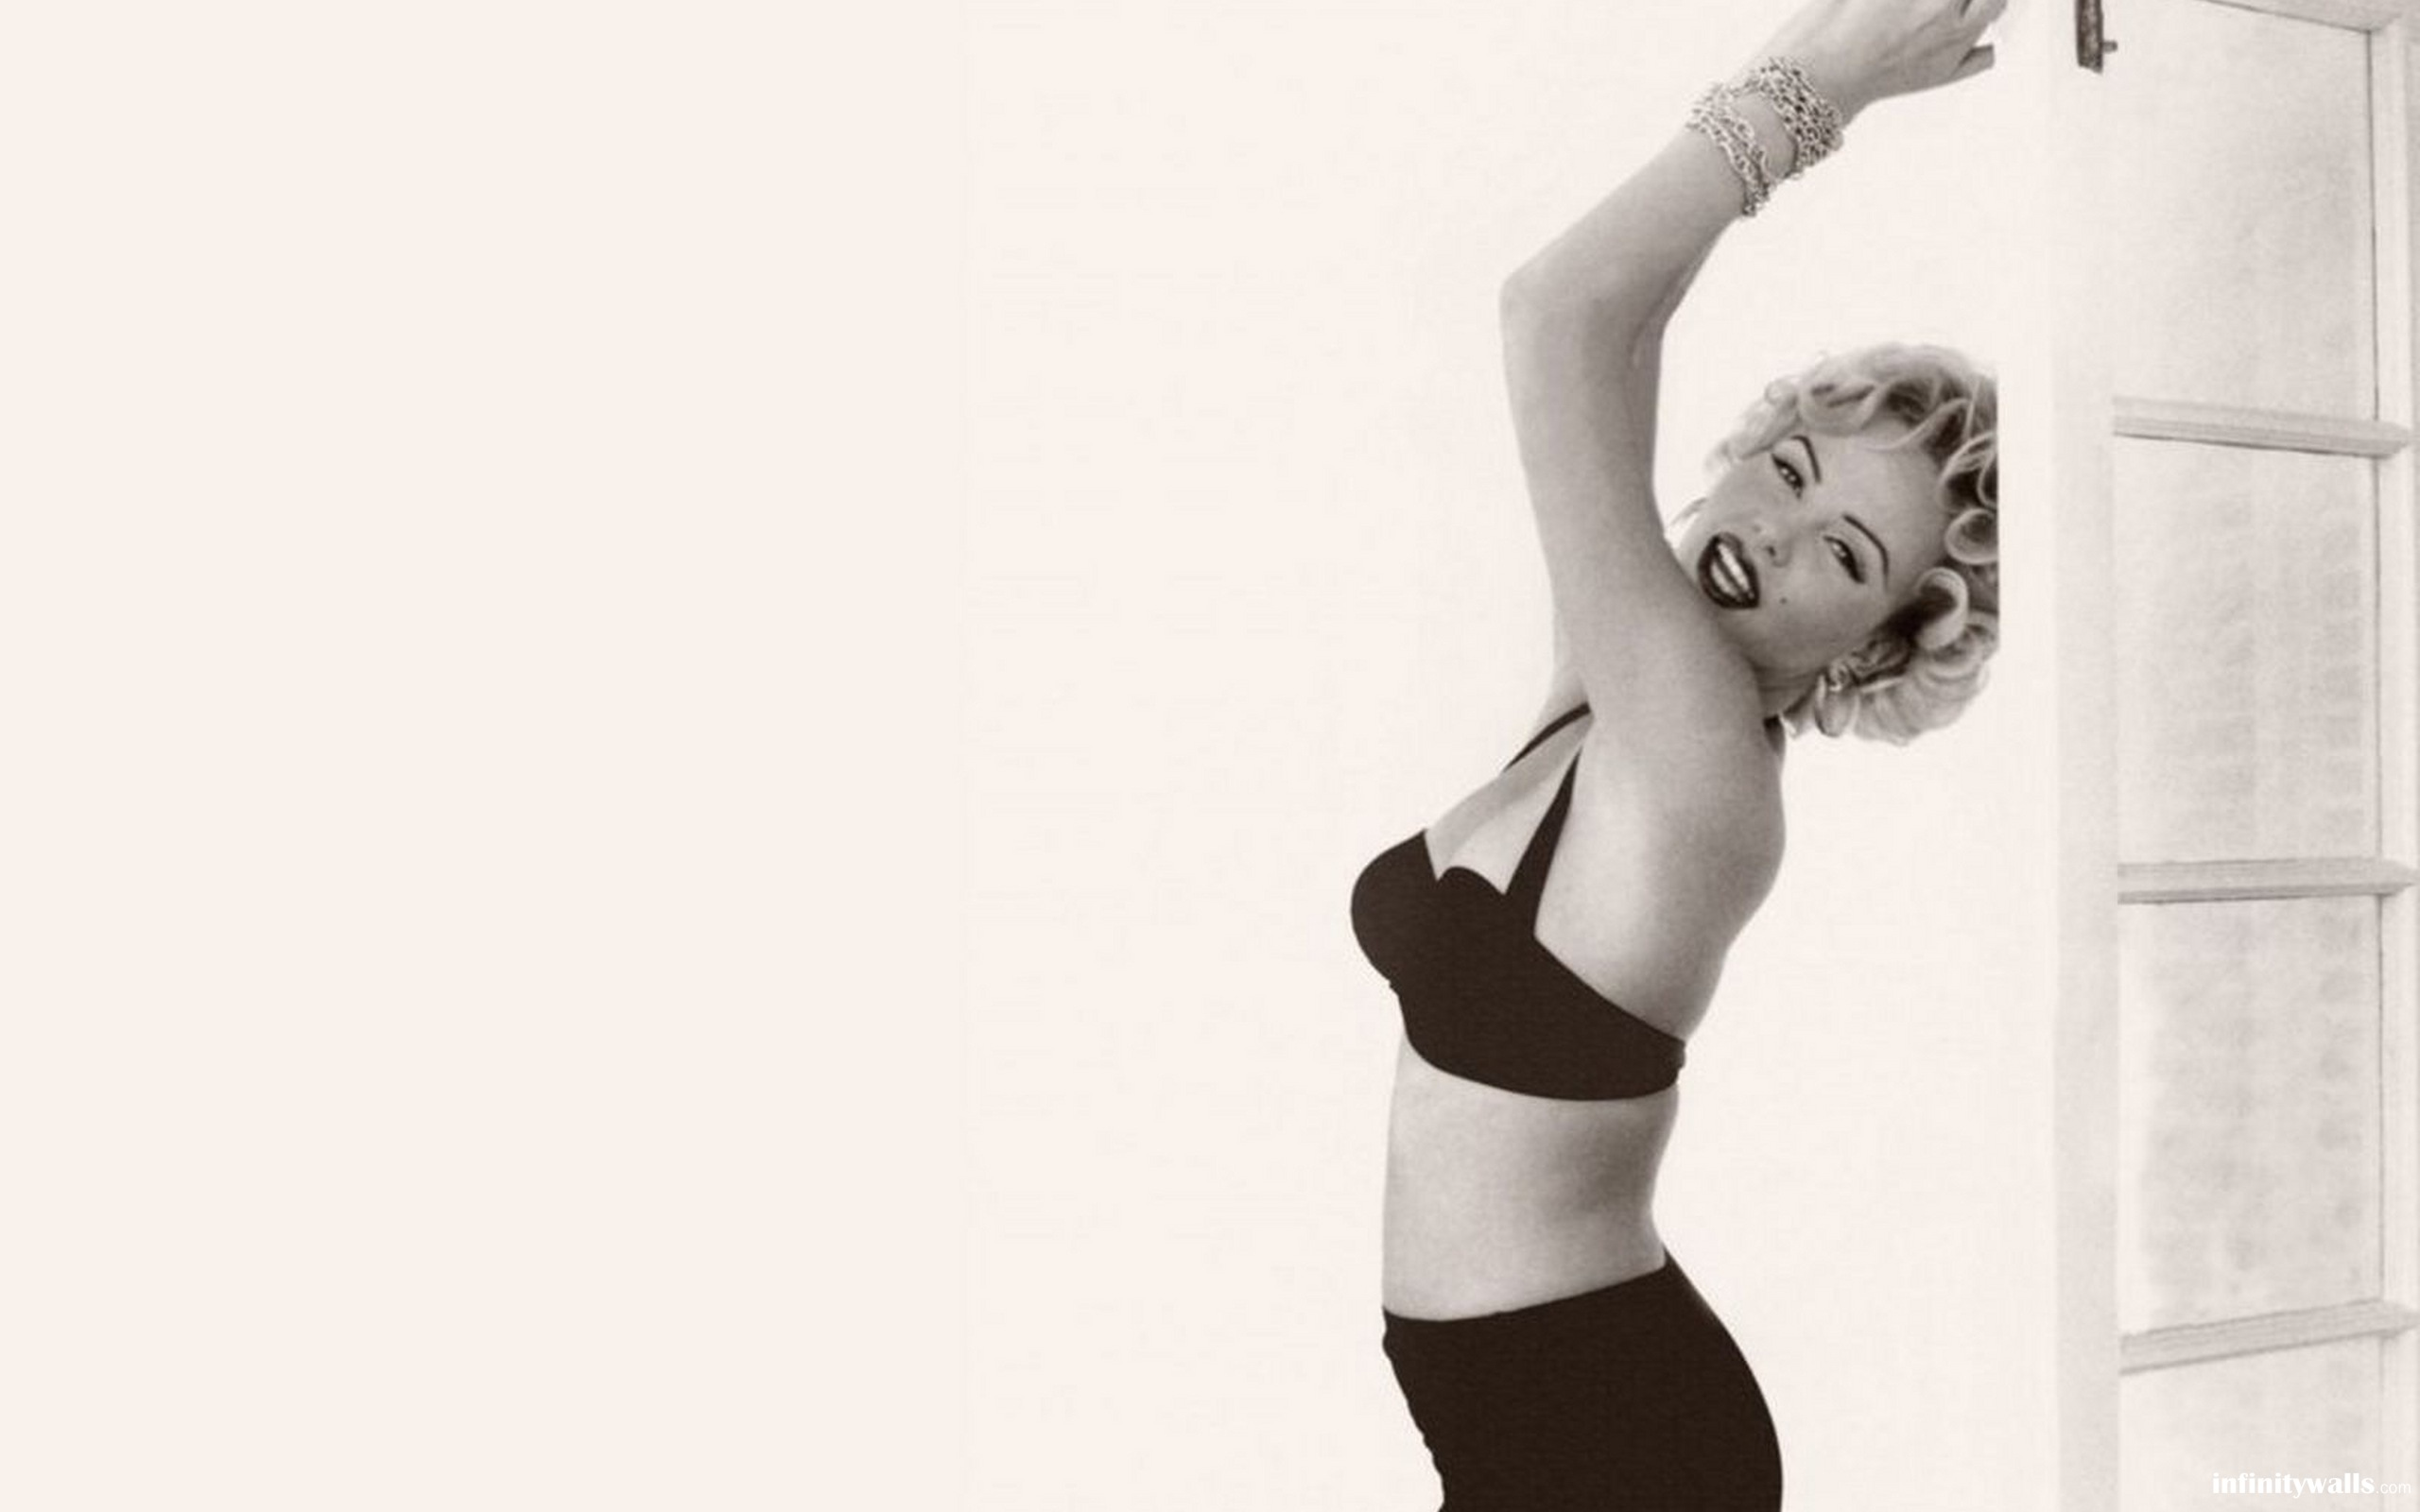 marilyn monroe backgrounds, pictures, images